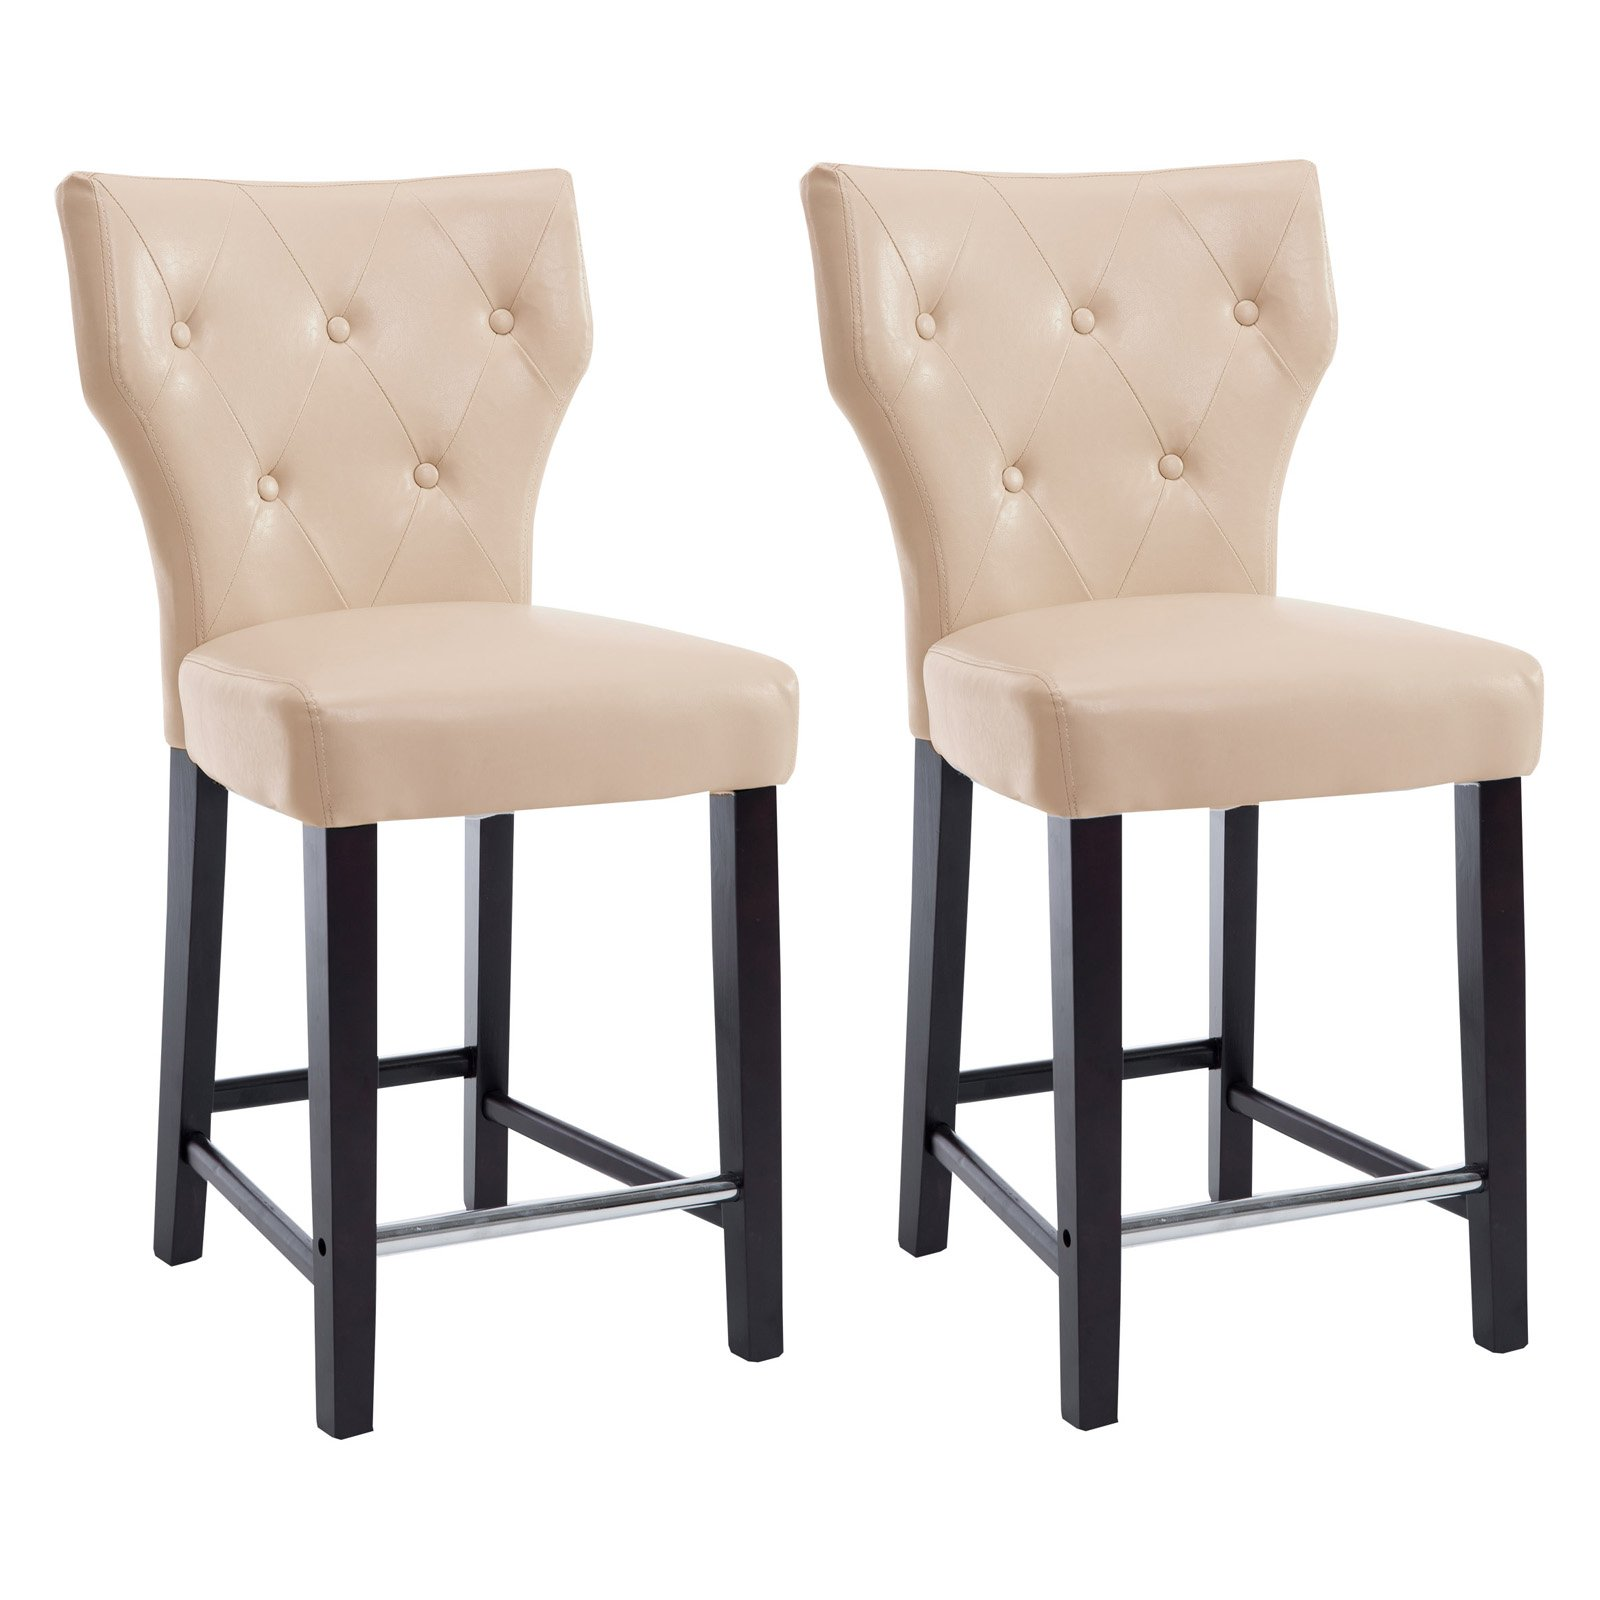 Kings Counter Height Barstool In Bonded Leather Set Of 2 Walmartcom